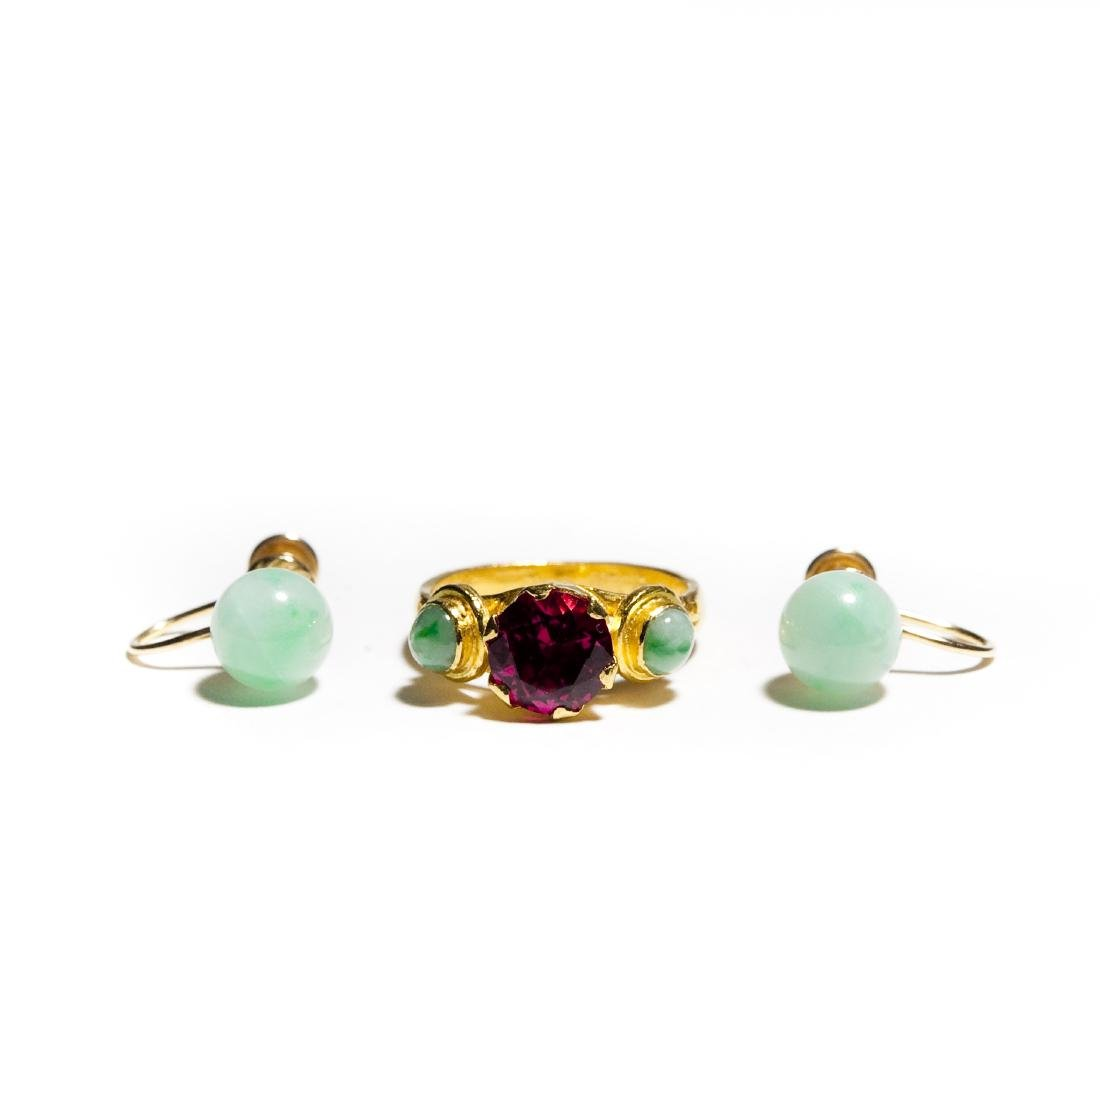 Chinese Jade And Ruby Gold Ring And Pair Of Earrings.